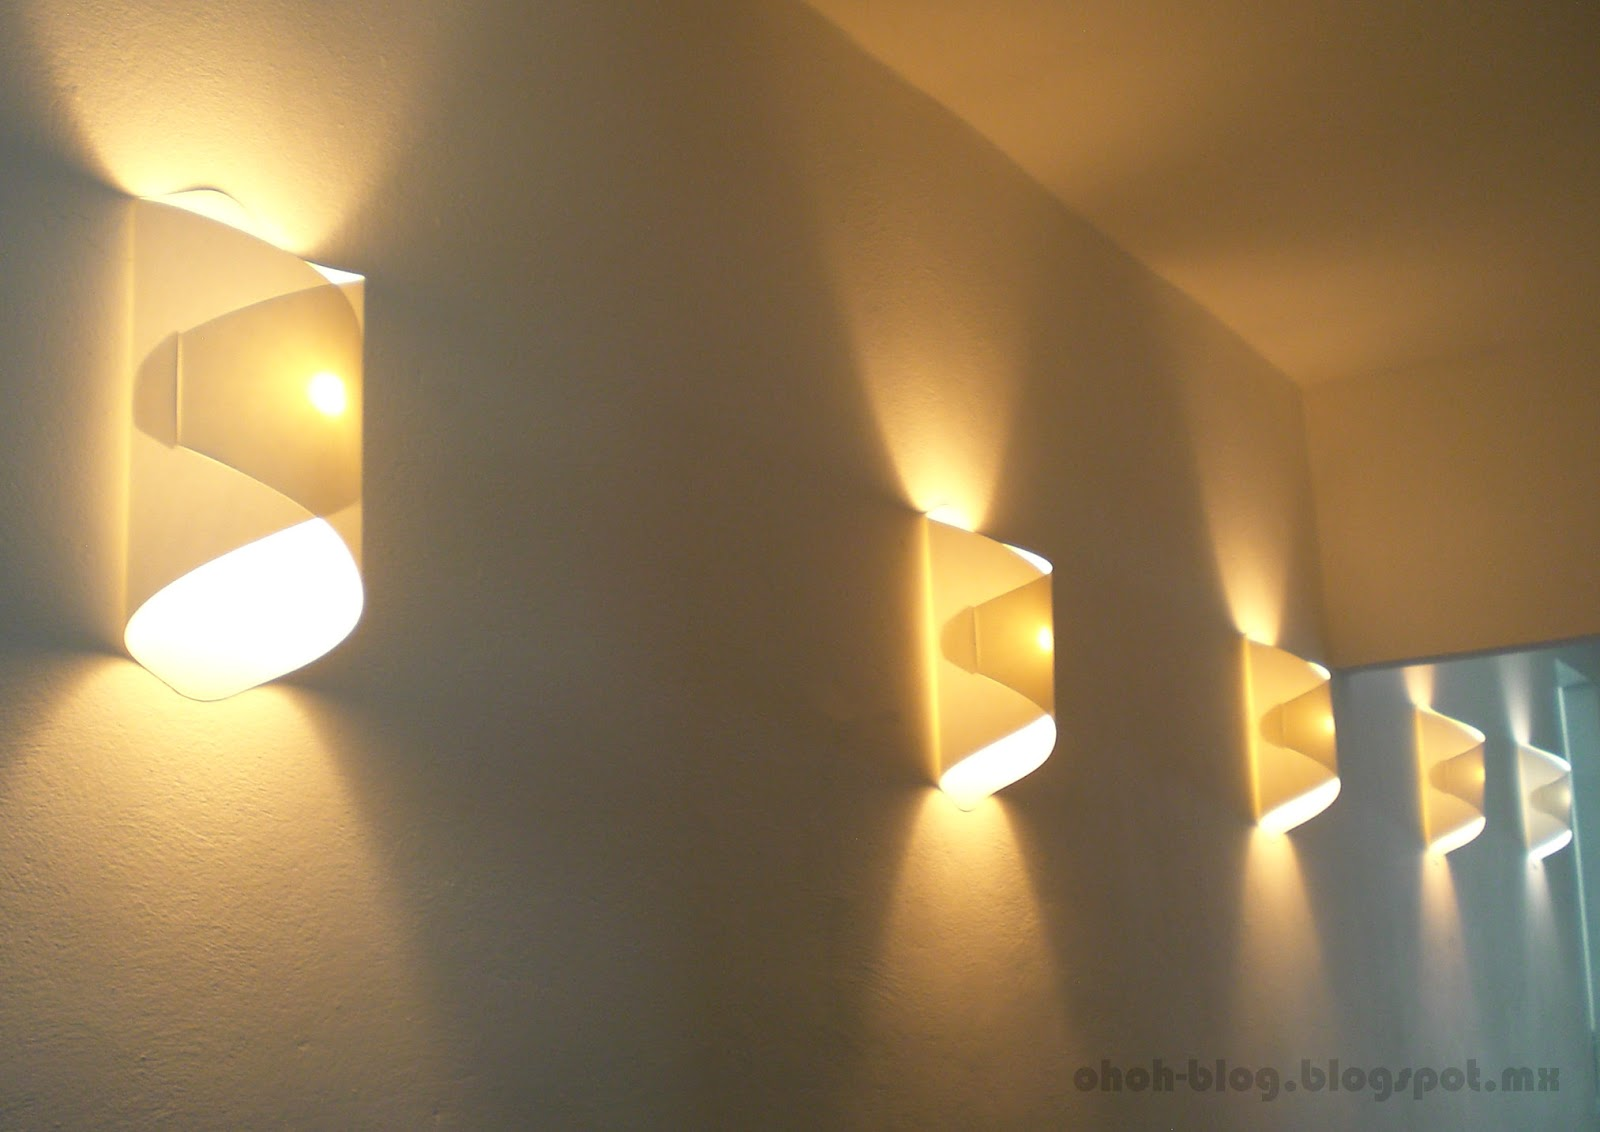 Bathroom Basement Ideas Diy Paper Lamp Lampara De Papel Ohoh Blog